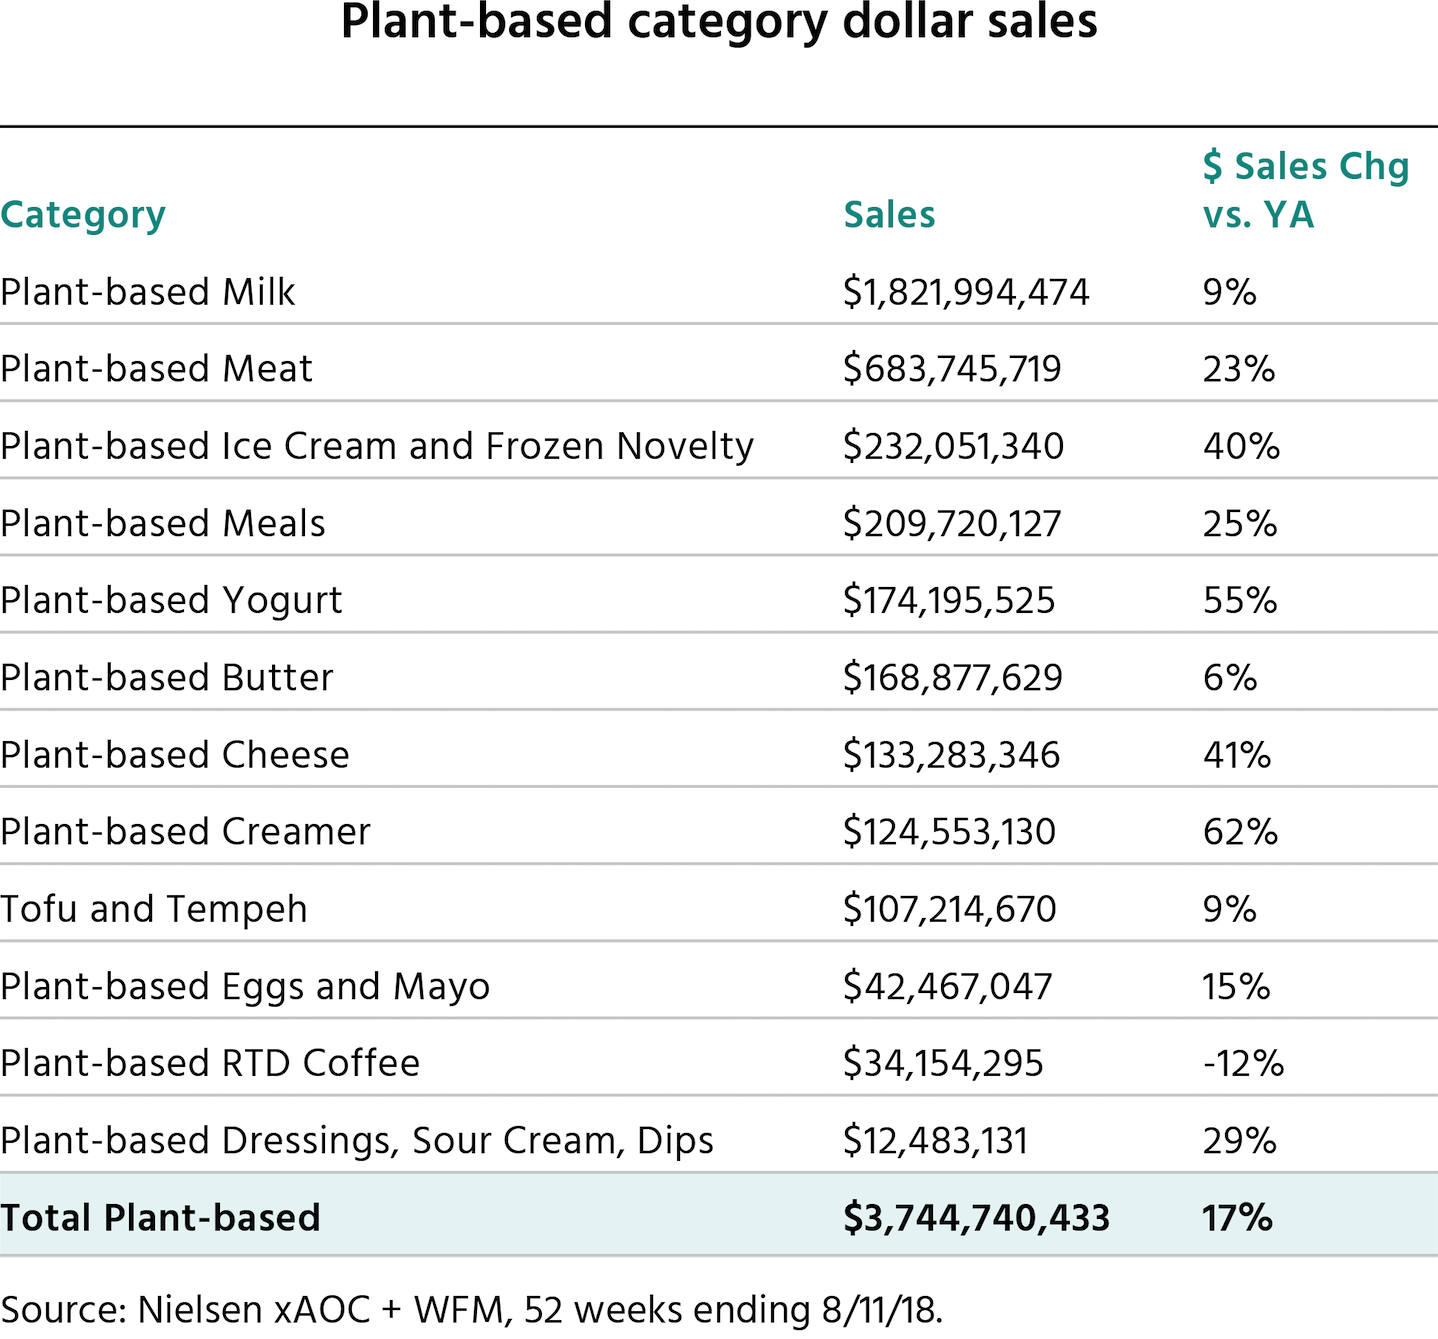 Plant-based category dollar sales chart